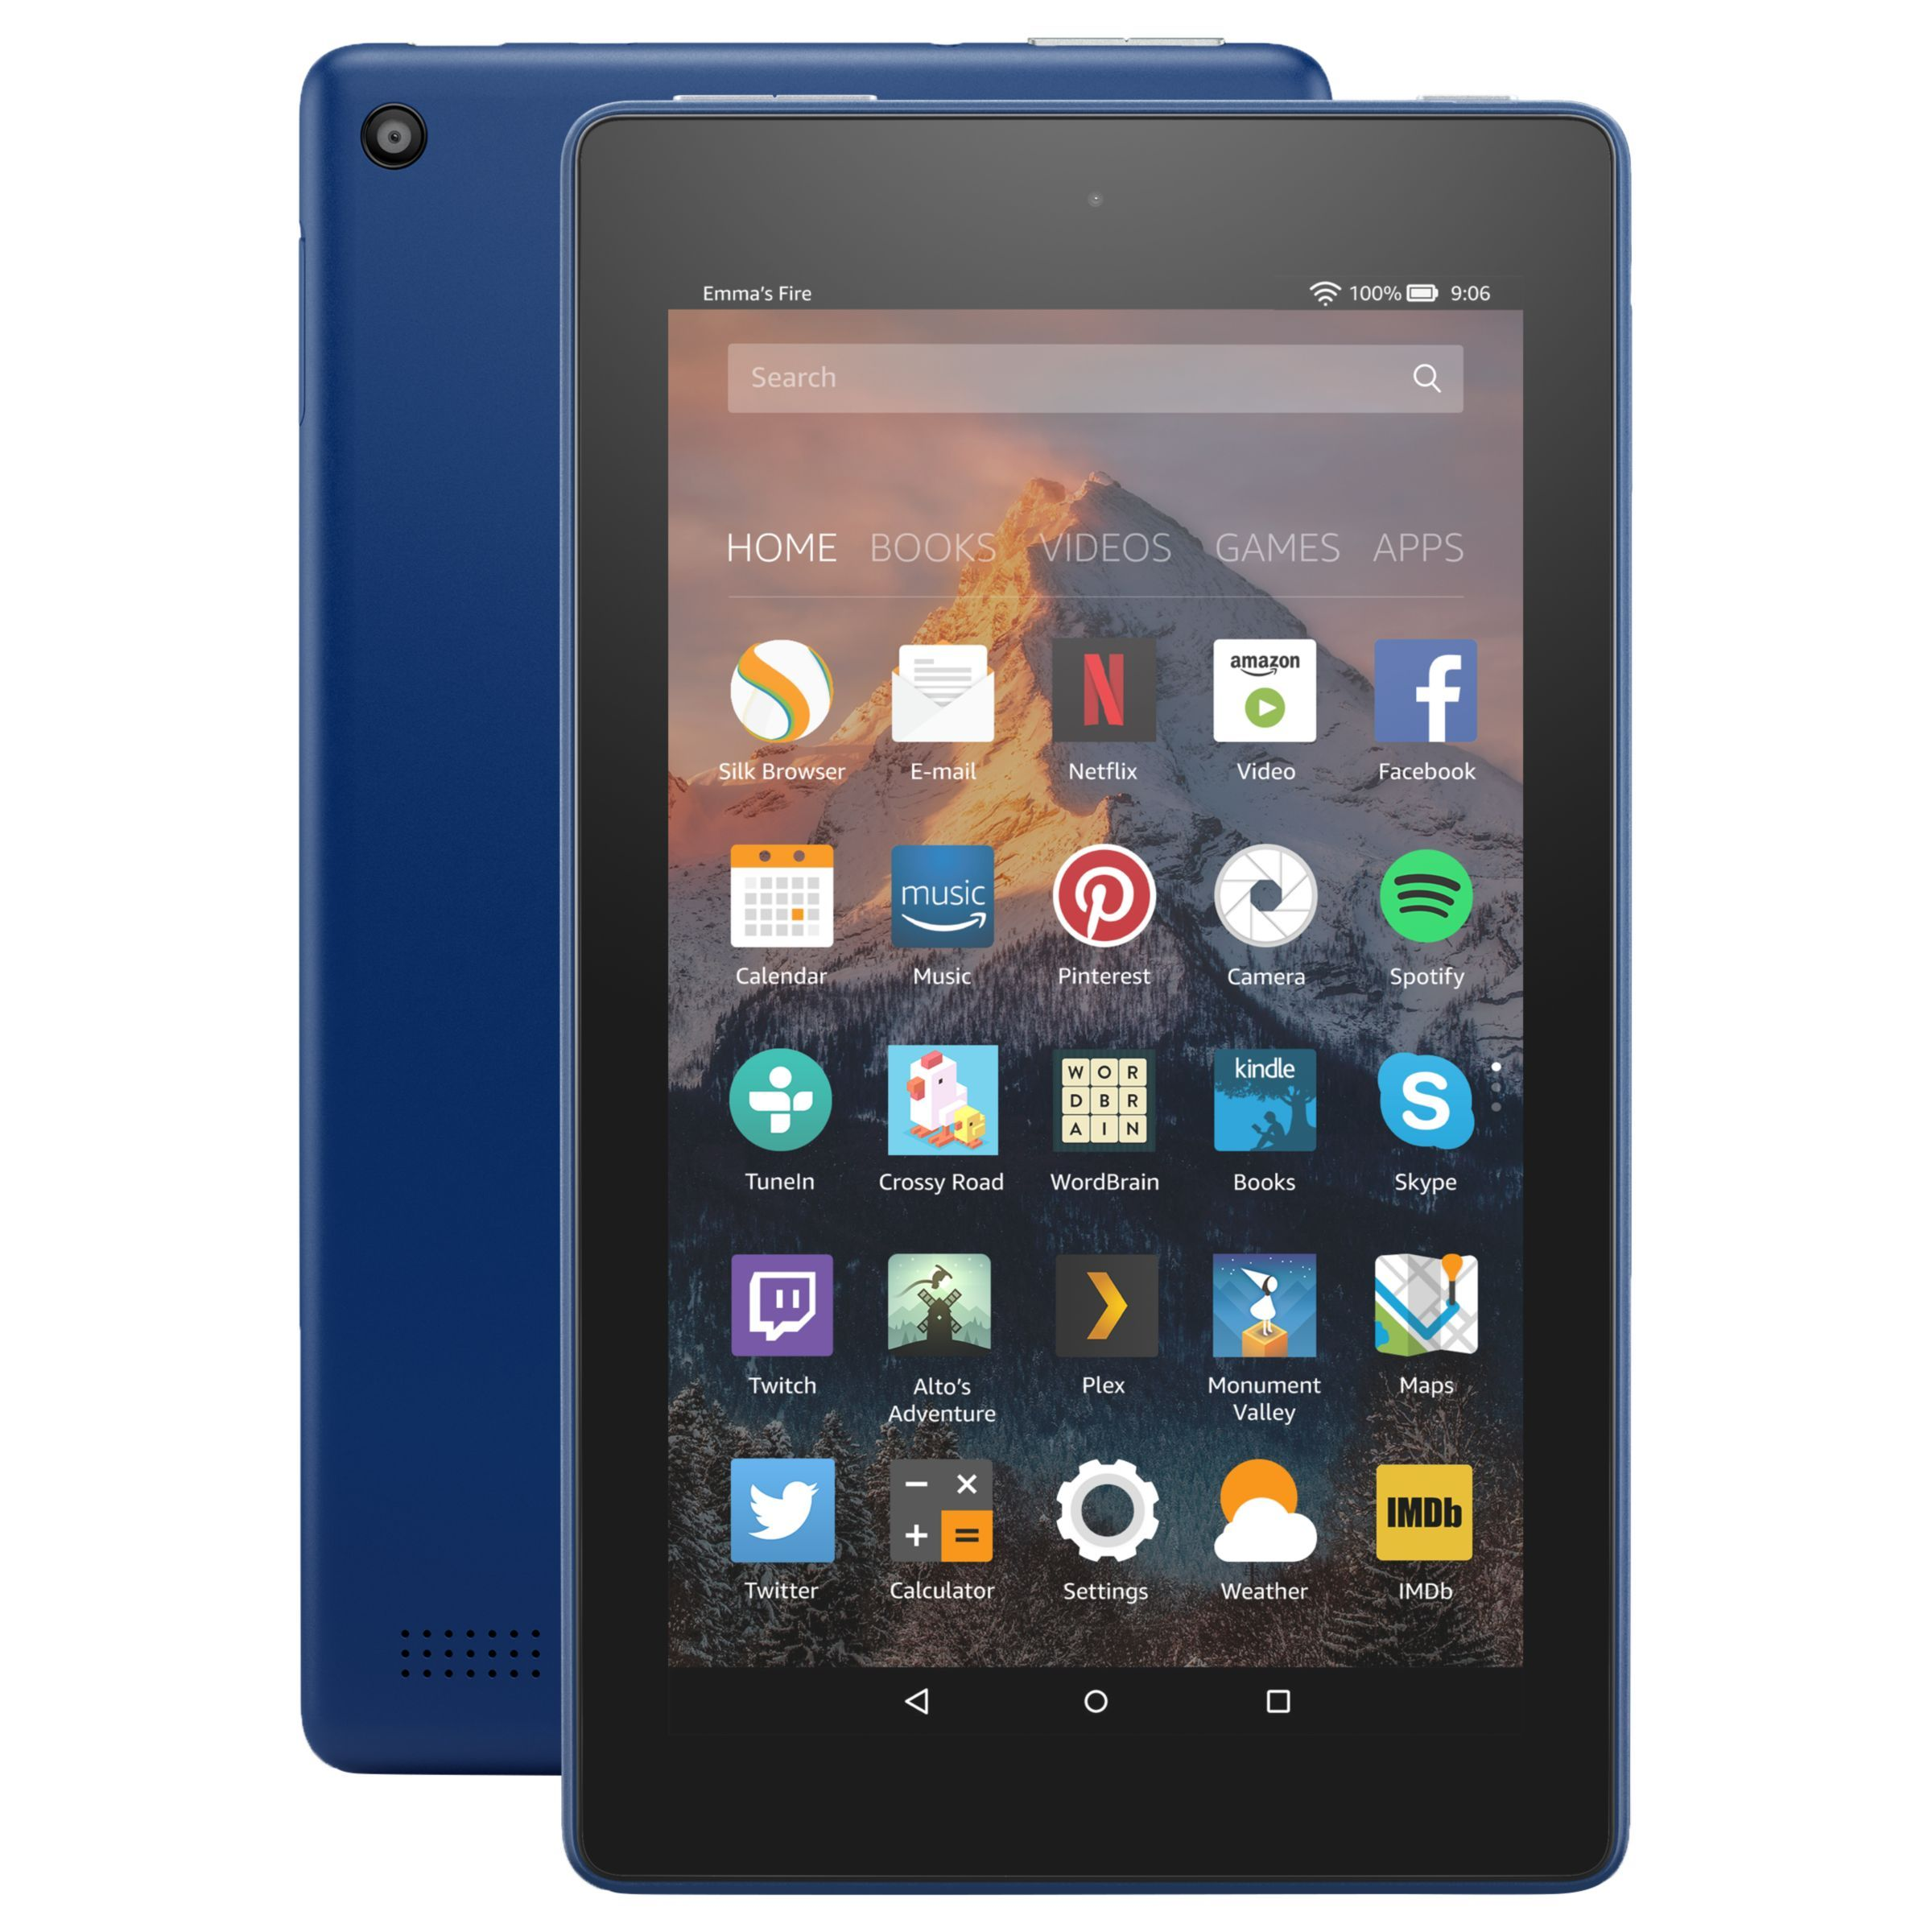 New Amazon Fire 7 Tablet With Alexa Quad Core Fire Os 7 Wi Fi